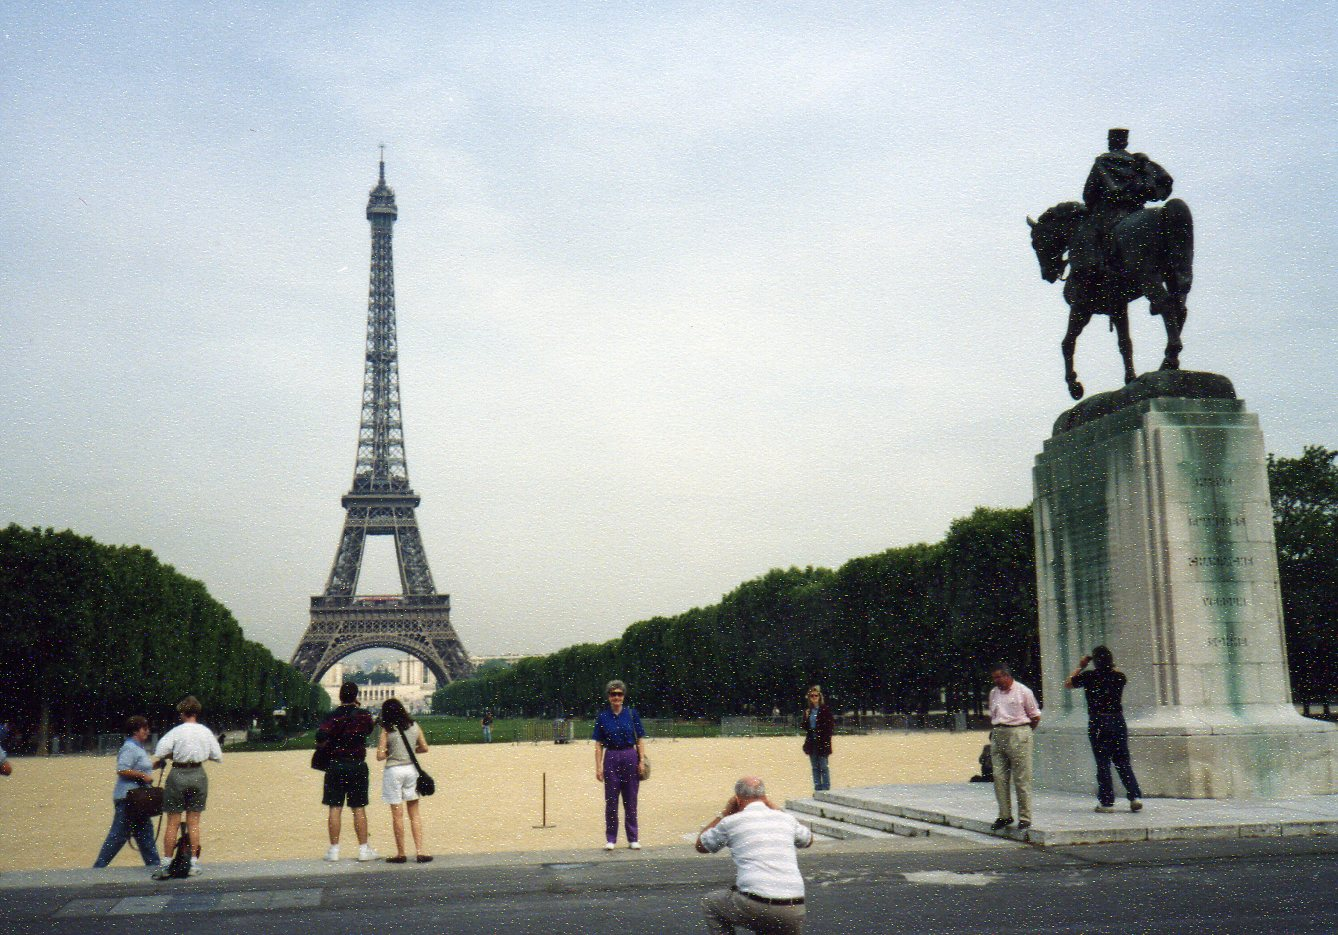 Tourists doing touristy things -